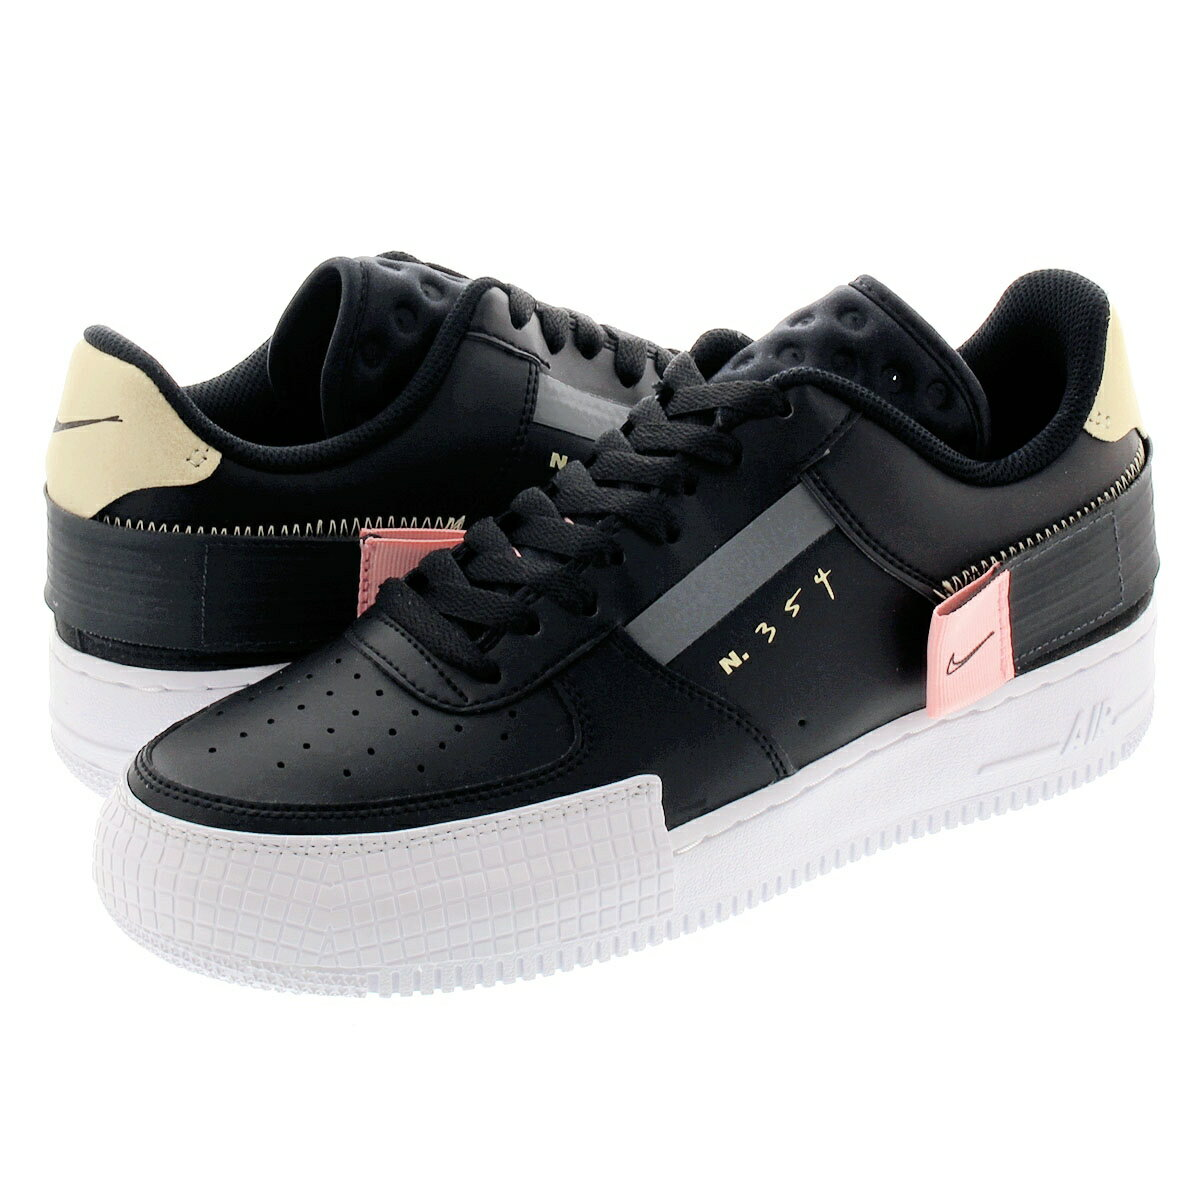 NIKE AIR FORCE 1 TYPE Nike air force one type BLACKANTHRACITEZINNIAPINK TINT ci0054 001